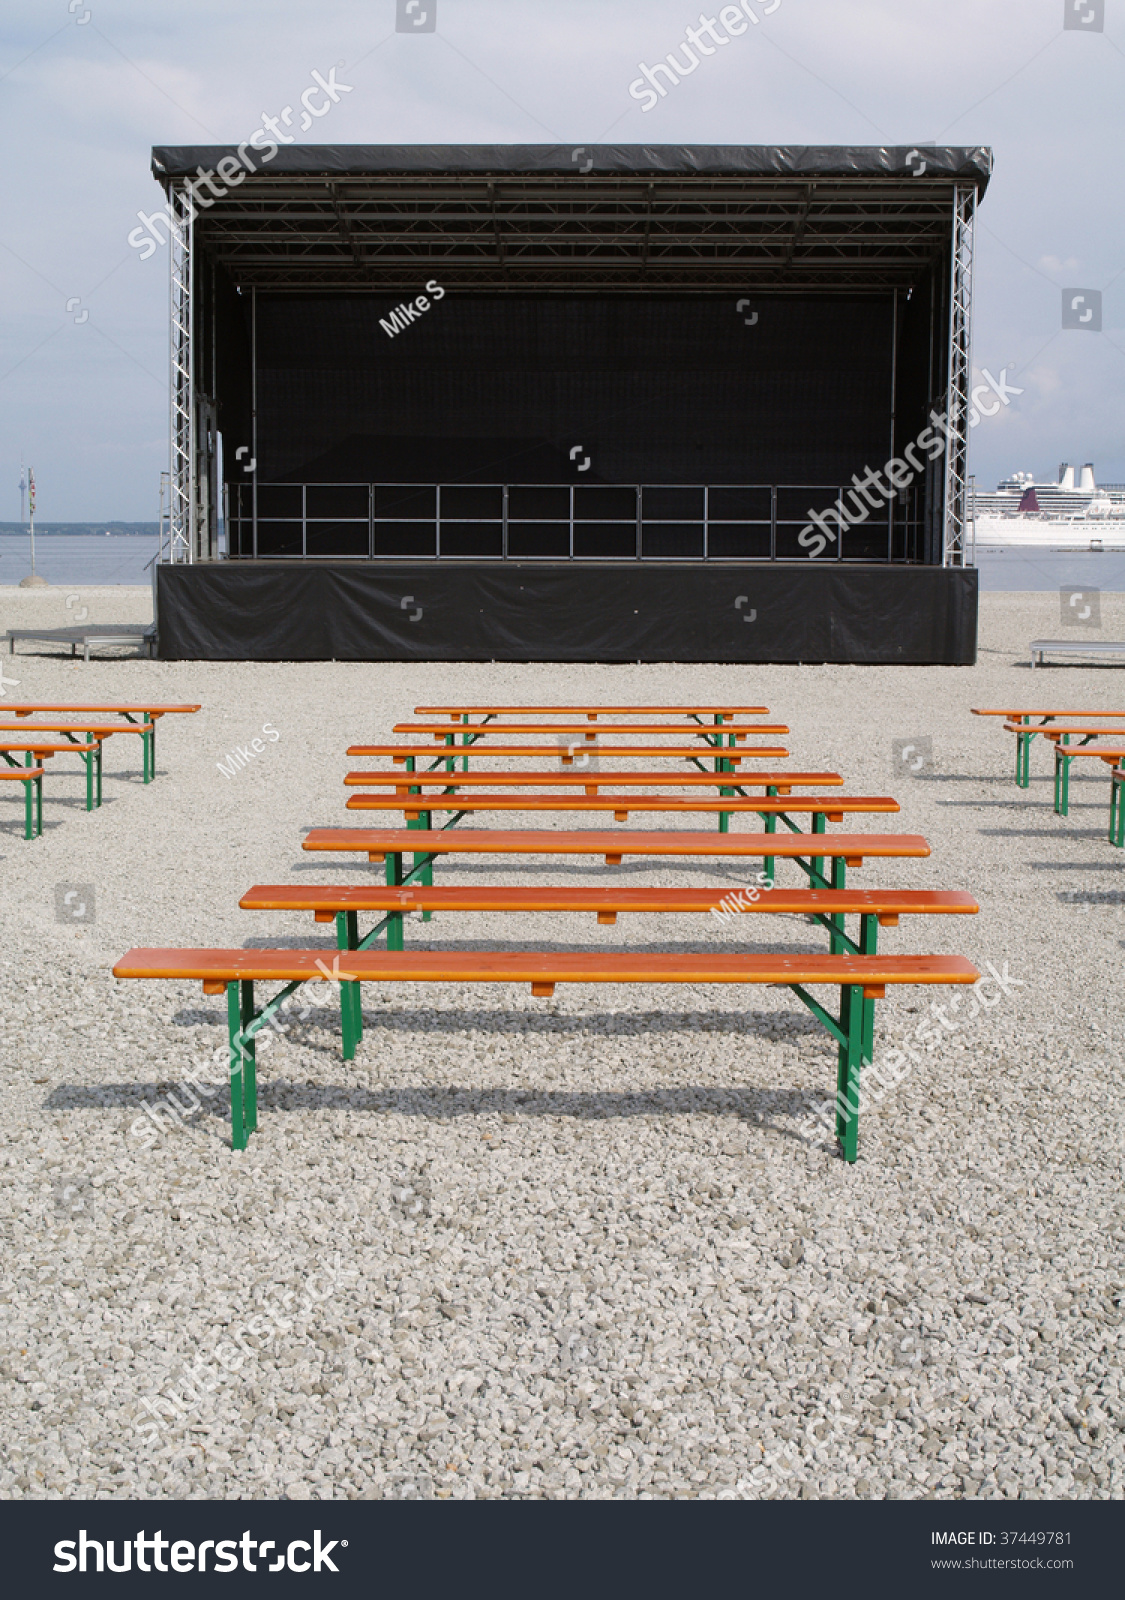 Empty outdoor concert stage - Empty Stage Is Beach Waiting For Concert